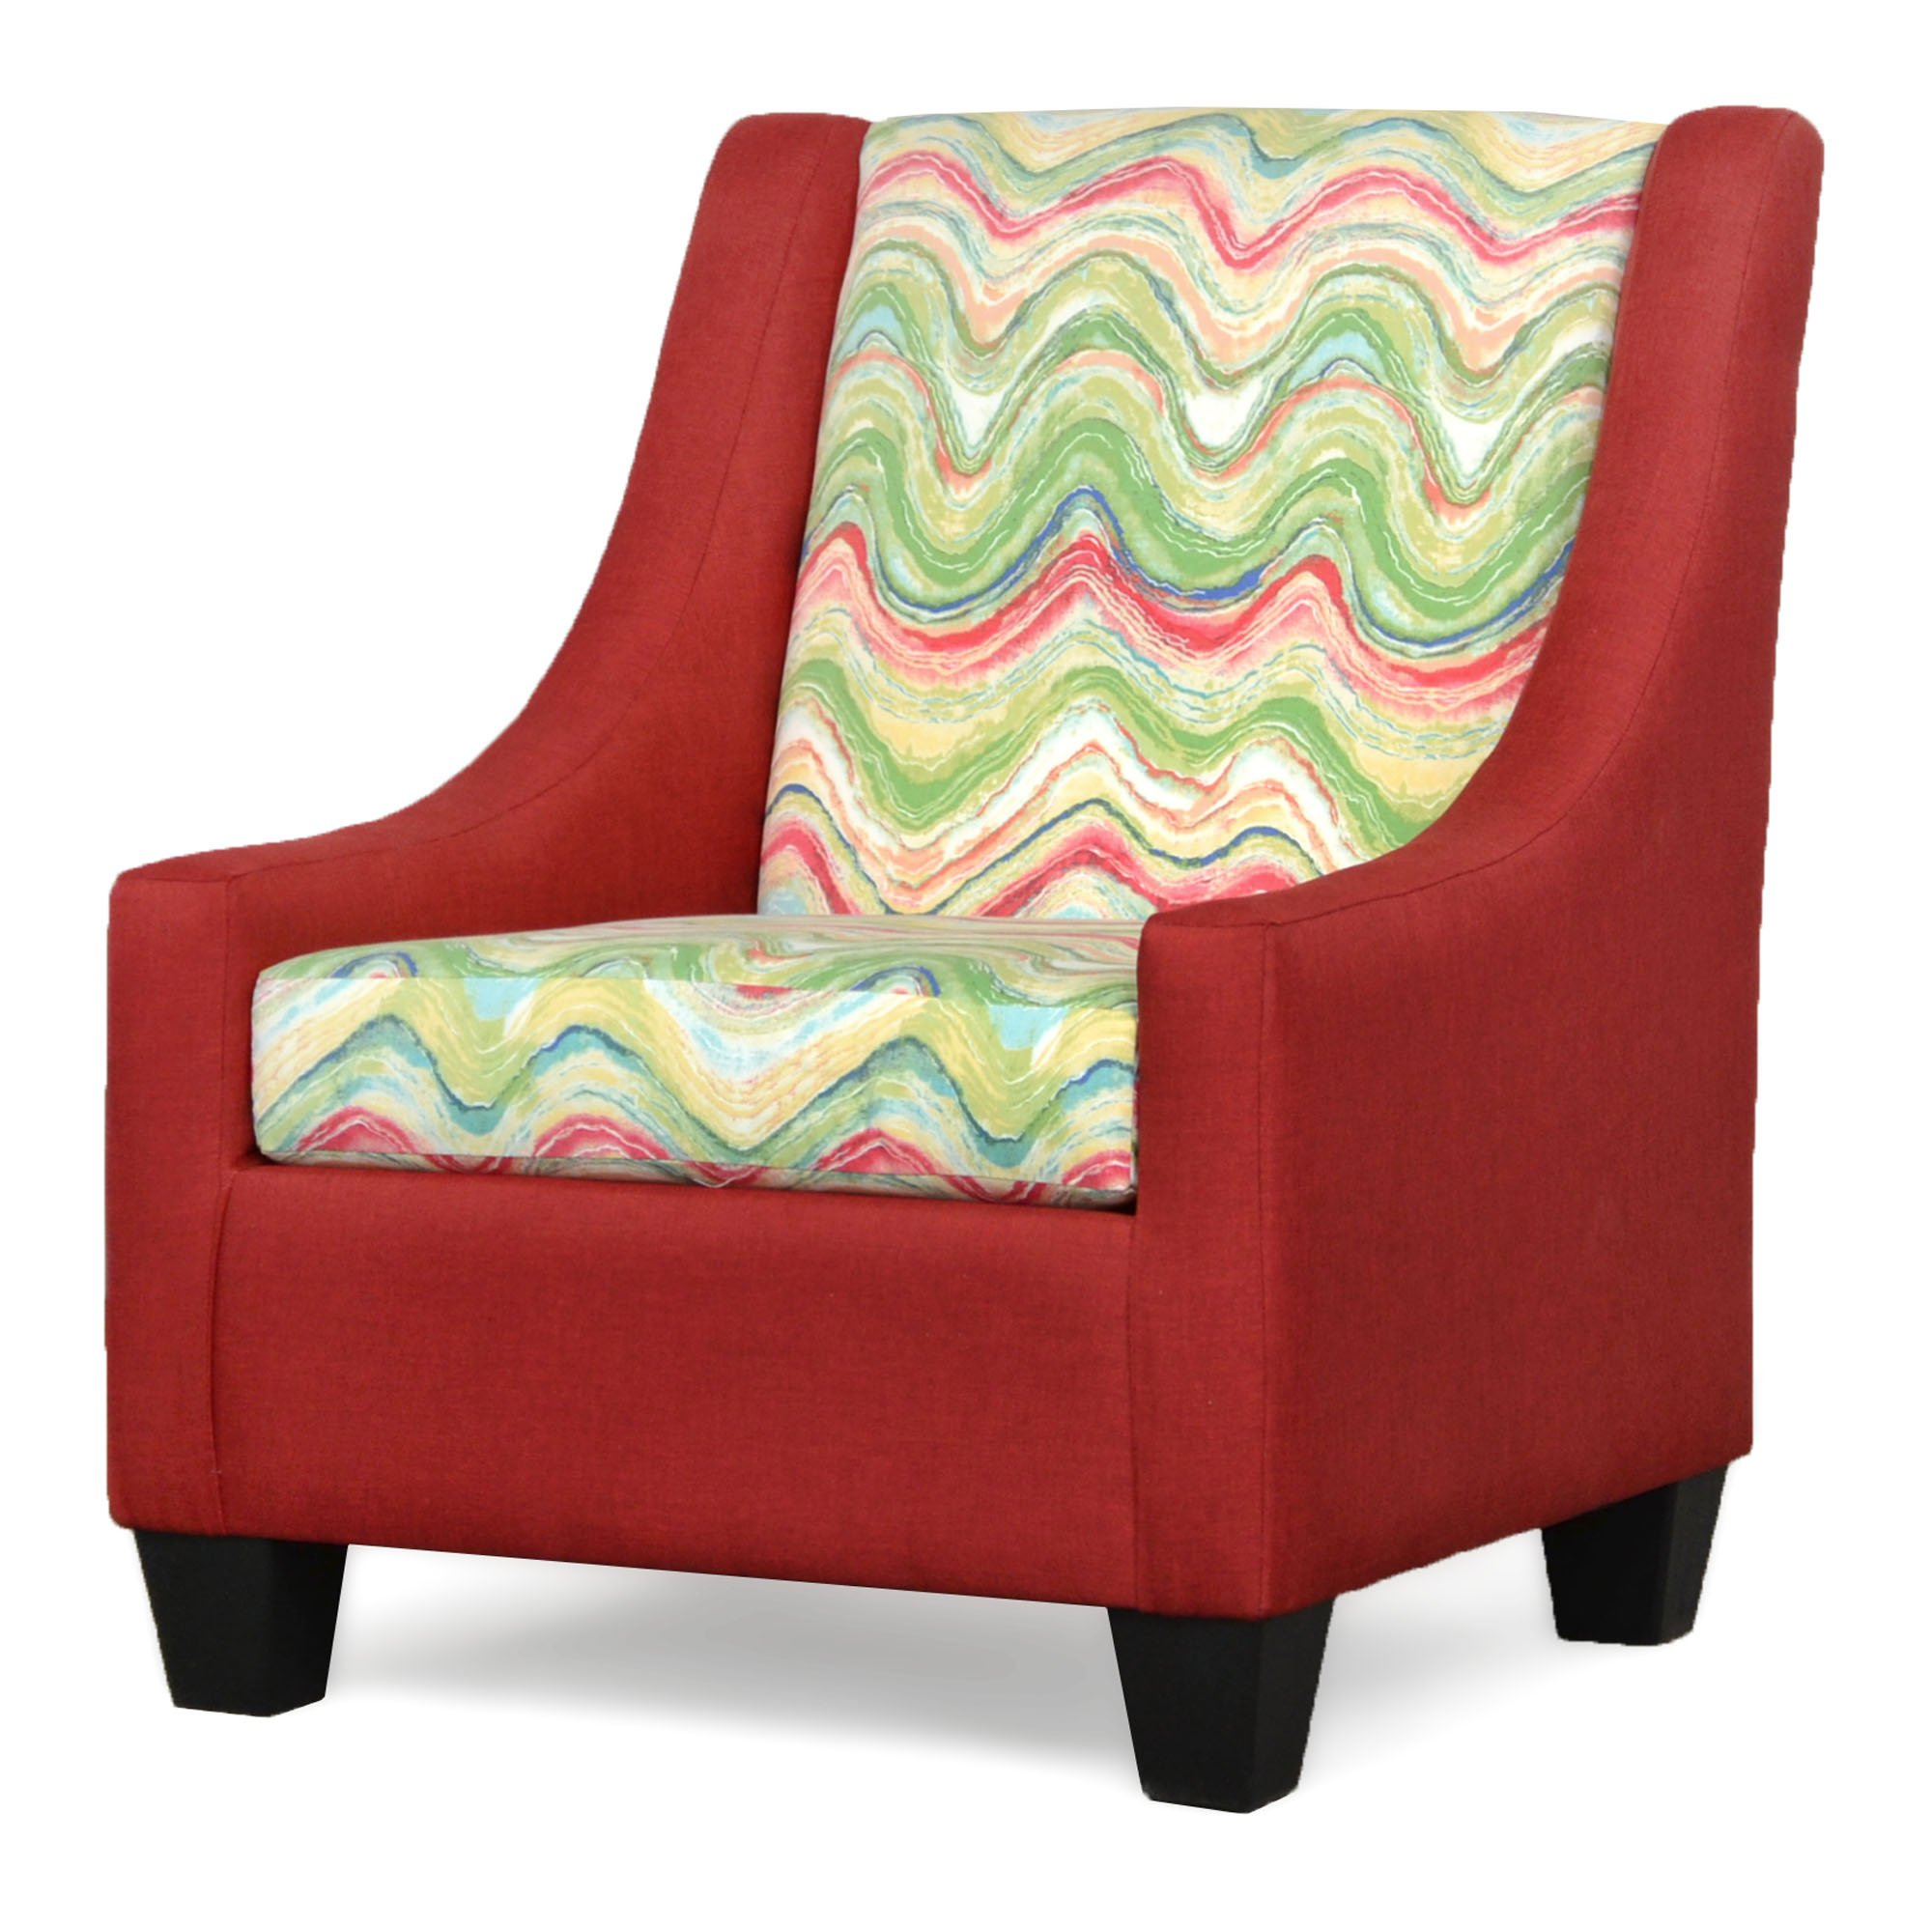 390 Luna Red Accent Chair